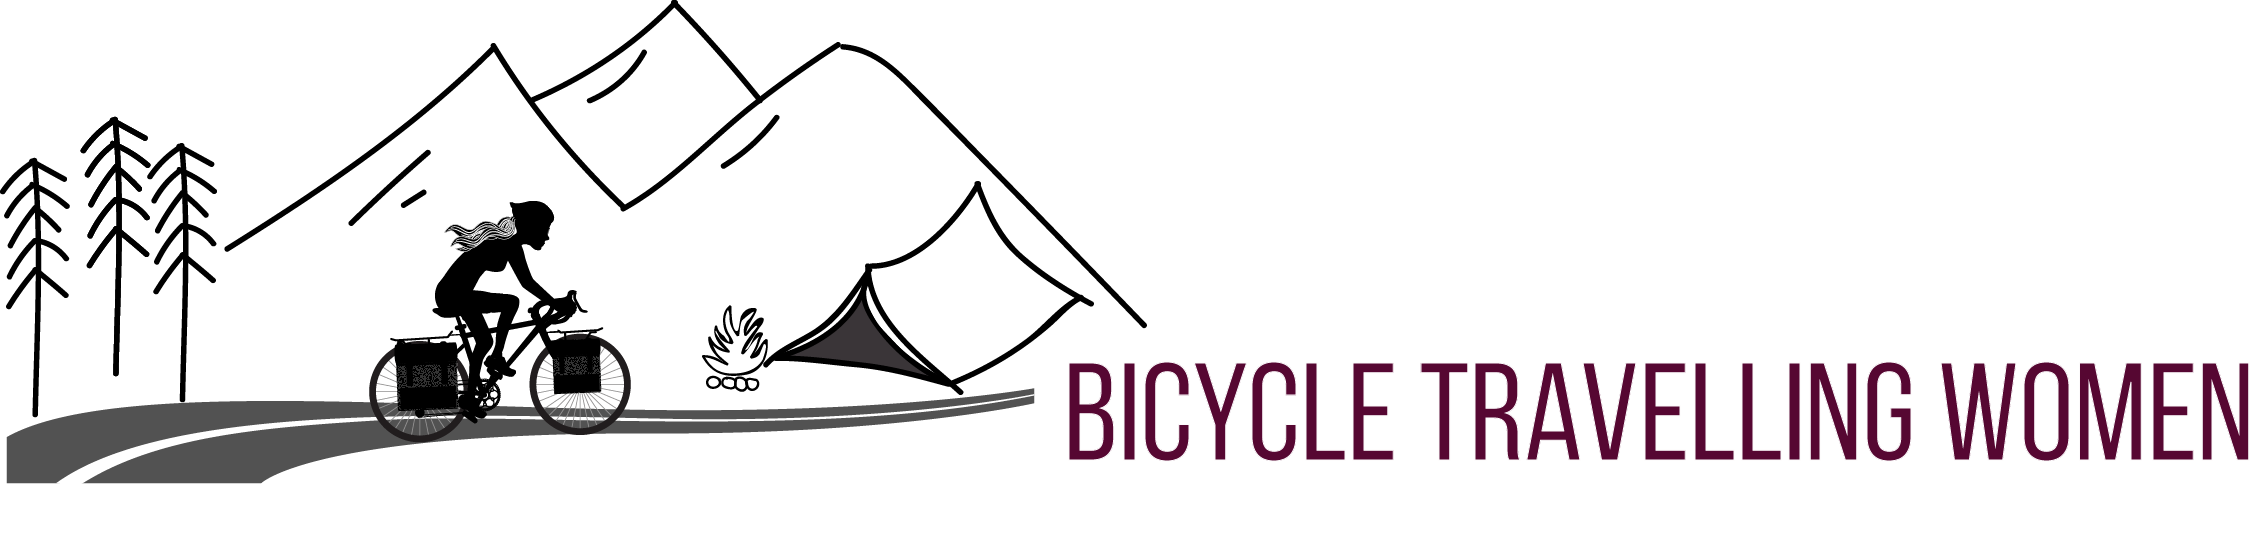 Bicycle Travelling Women